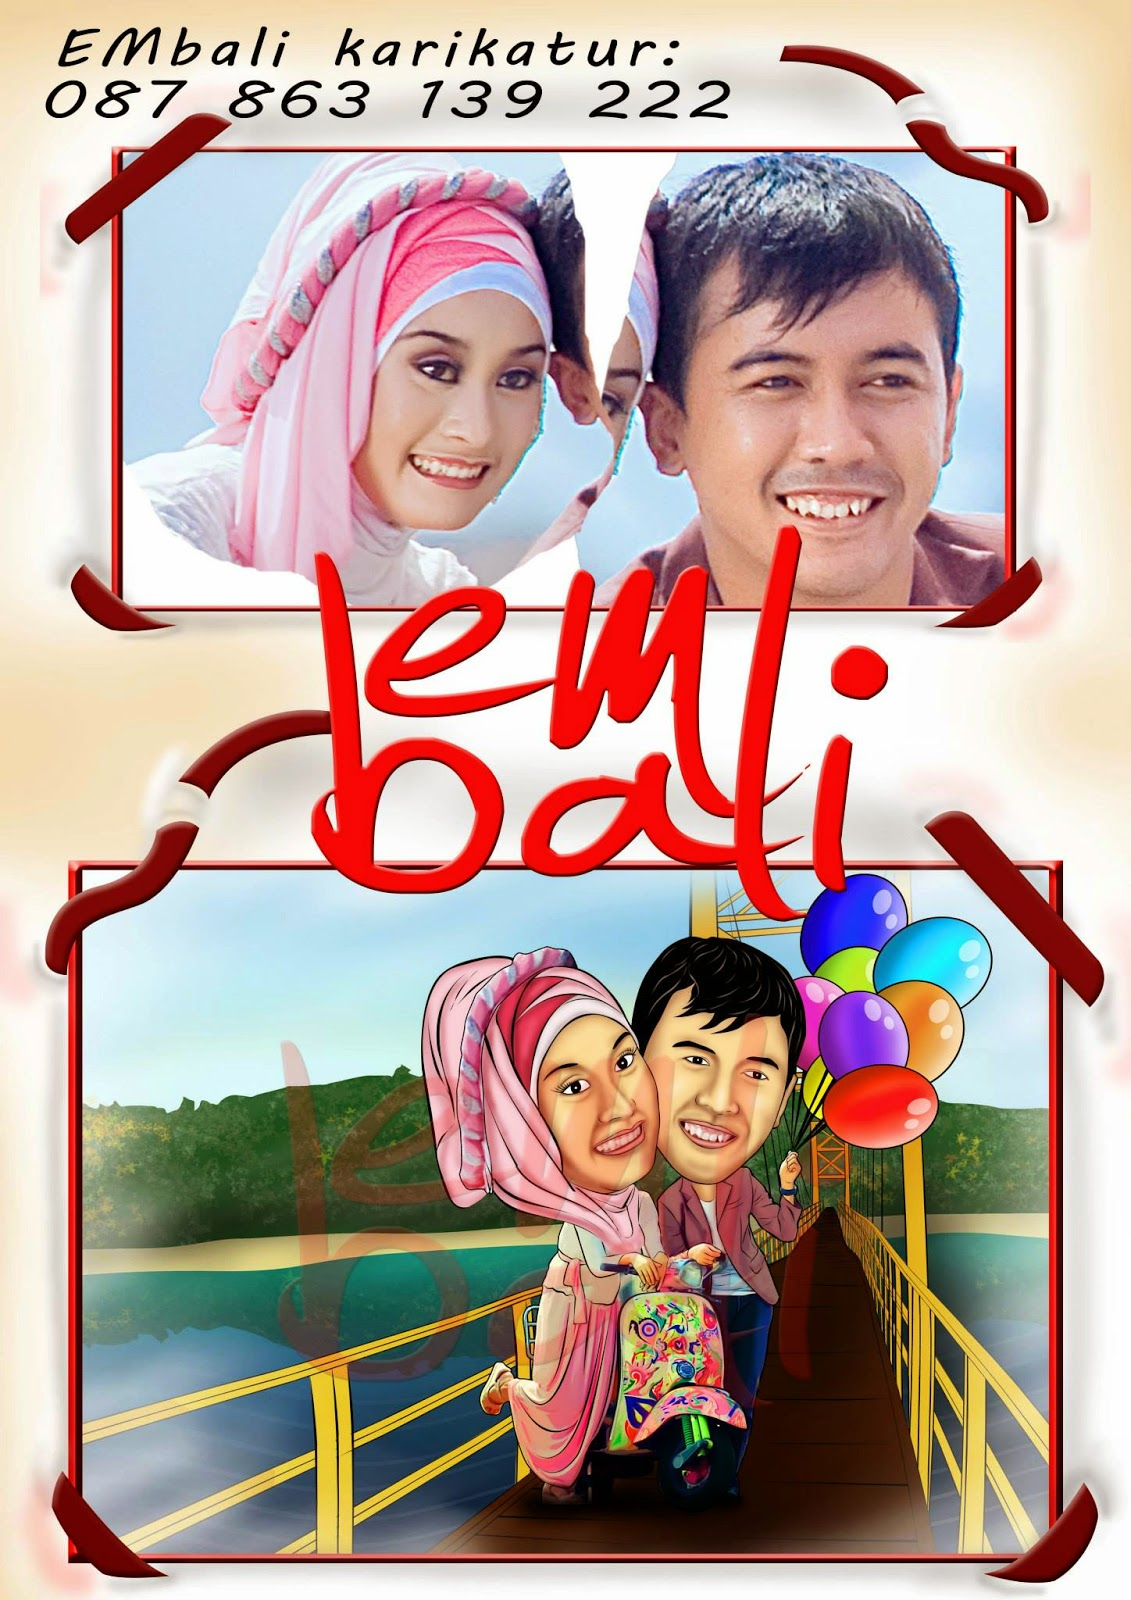 EMbali Karikatur April 2015